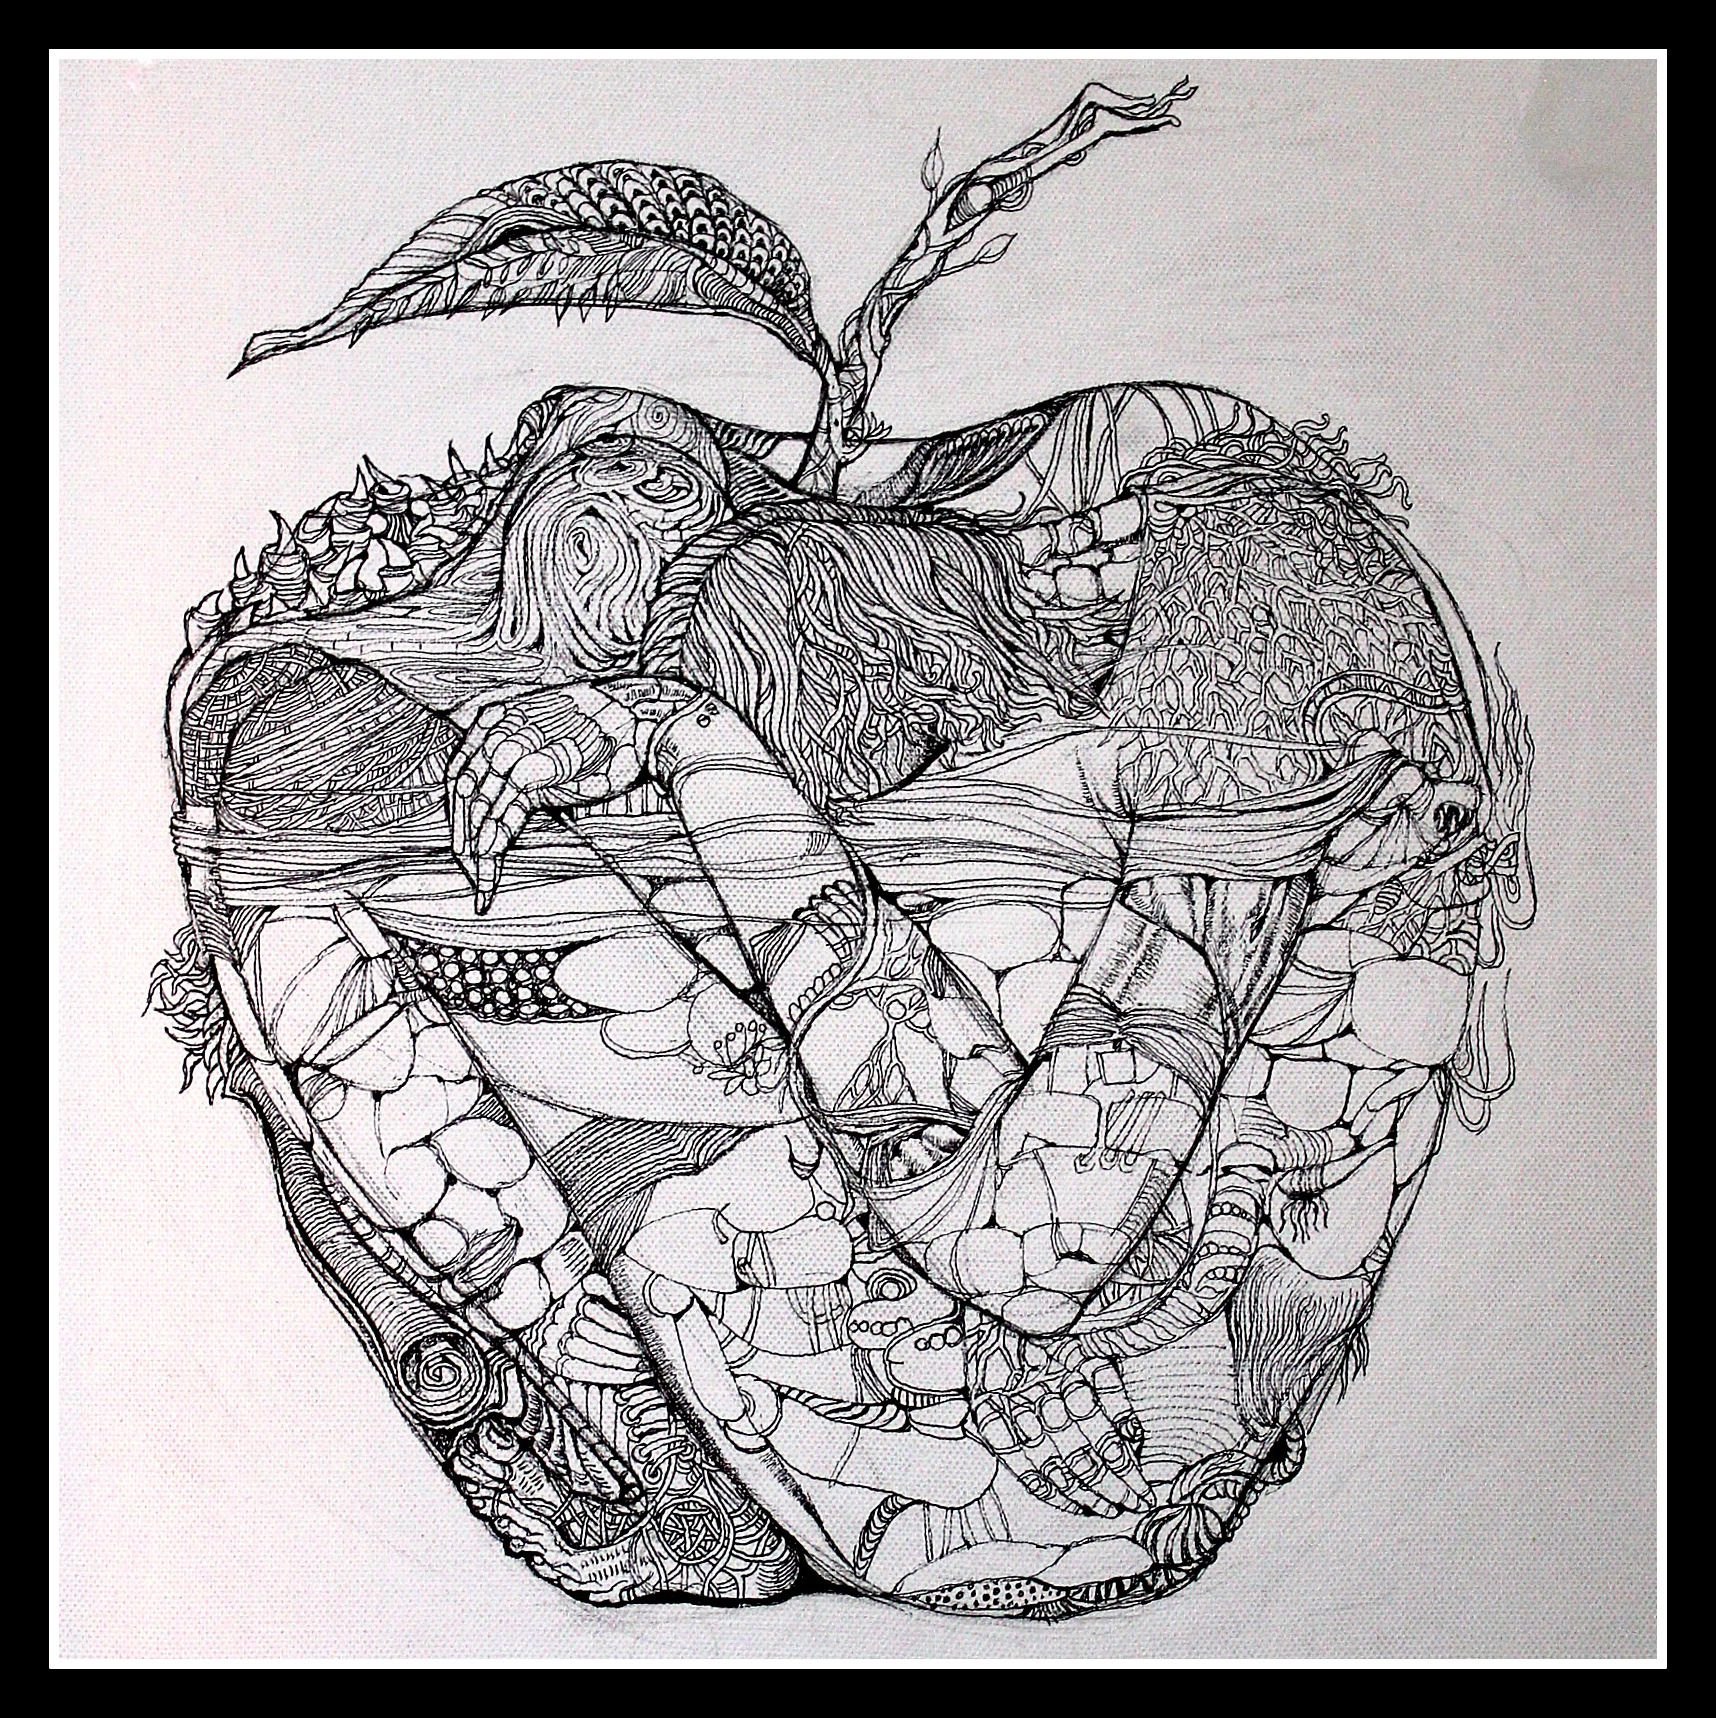 Art Design Drawing : Autographic drawings art people gallery